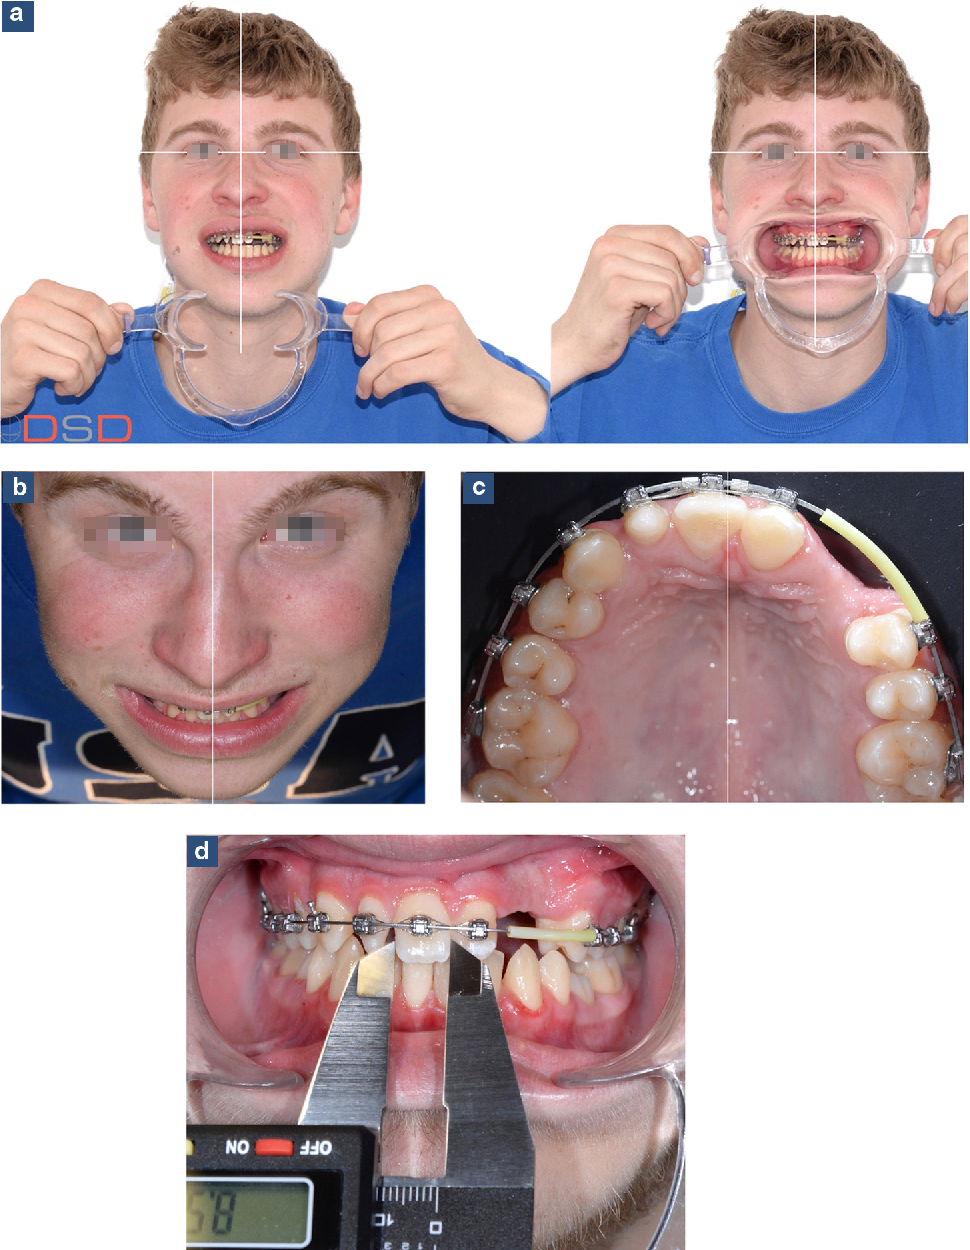 Figure 2 From Benefits Of Digital Smile Design Dsd In The Conception Of A Complex Orthodontic Treatment Plan A Case Report Proof Of Concept Semantic Scholar